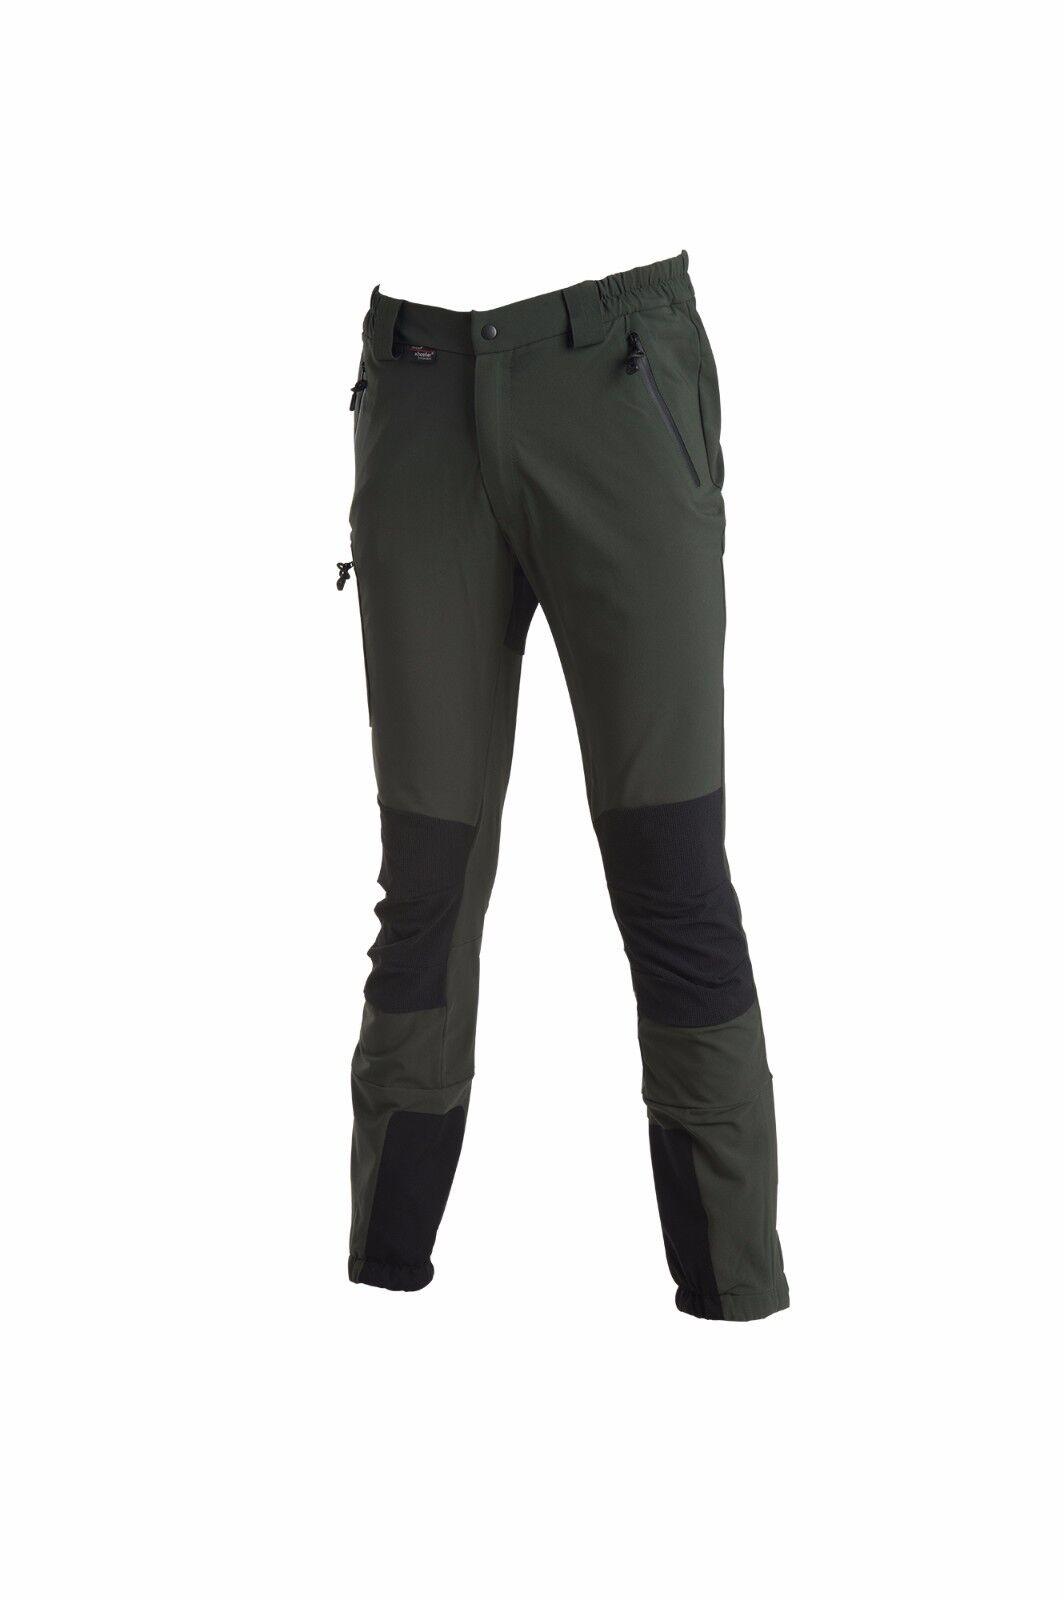 XTECH ICE MOUNTAIN PANTS TROUSERS SCHOELLER GREEN GREEN SKIING SNOW TG-SIZE S 46